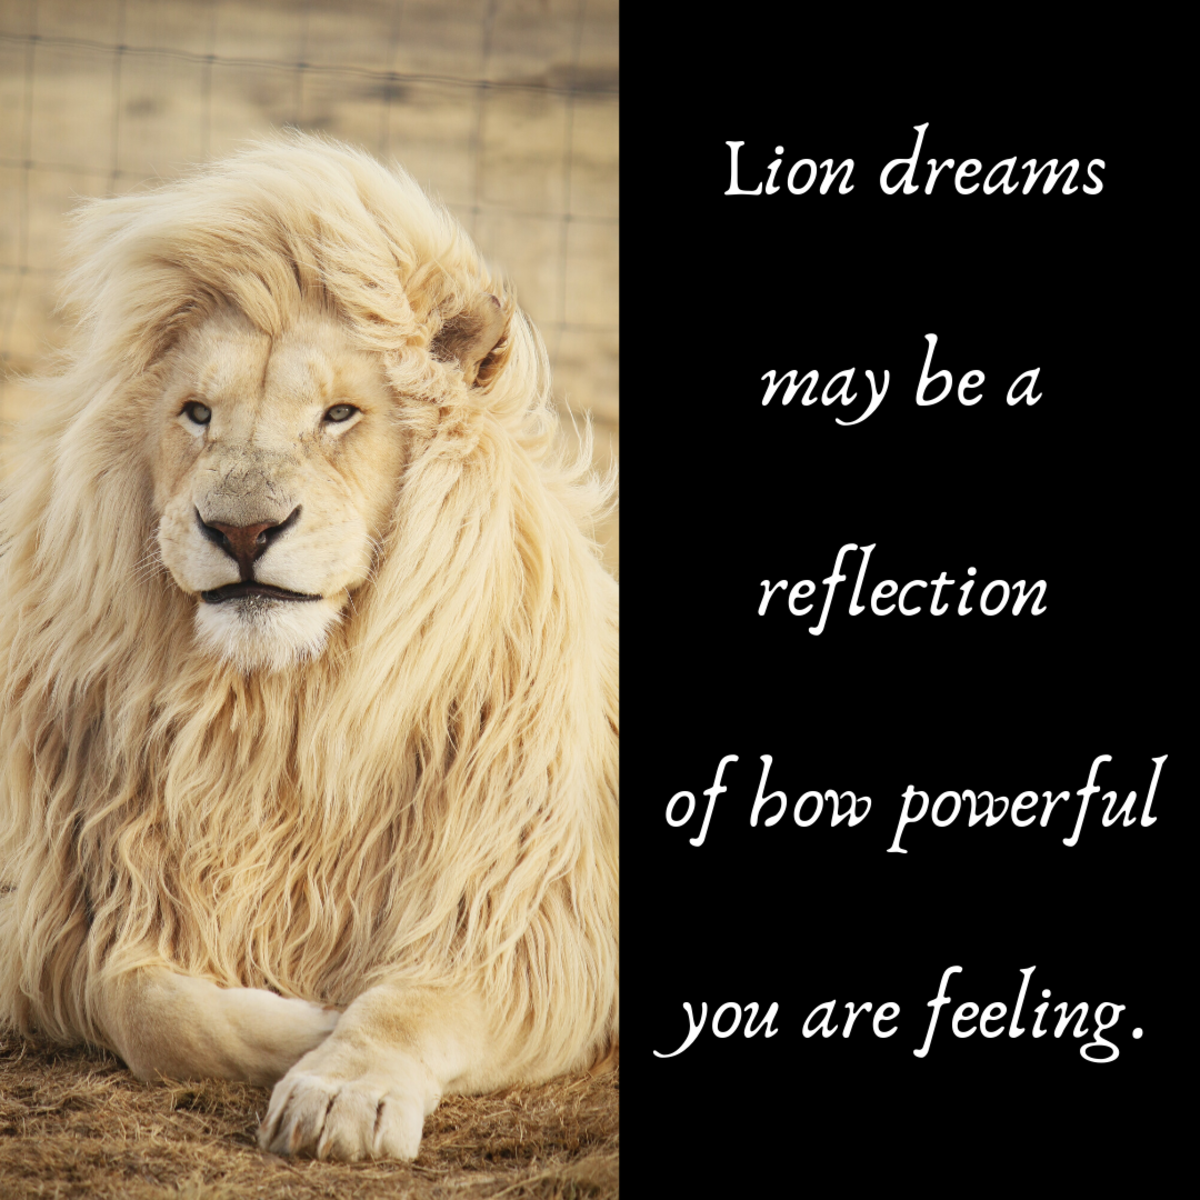 In many cultures, lions are symbols of strength.